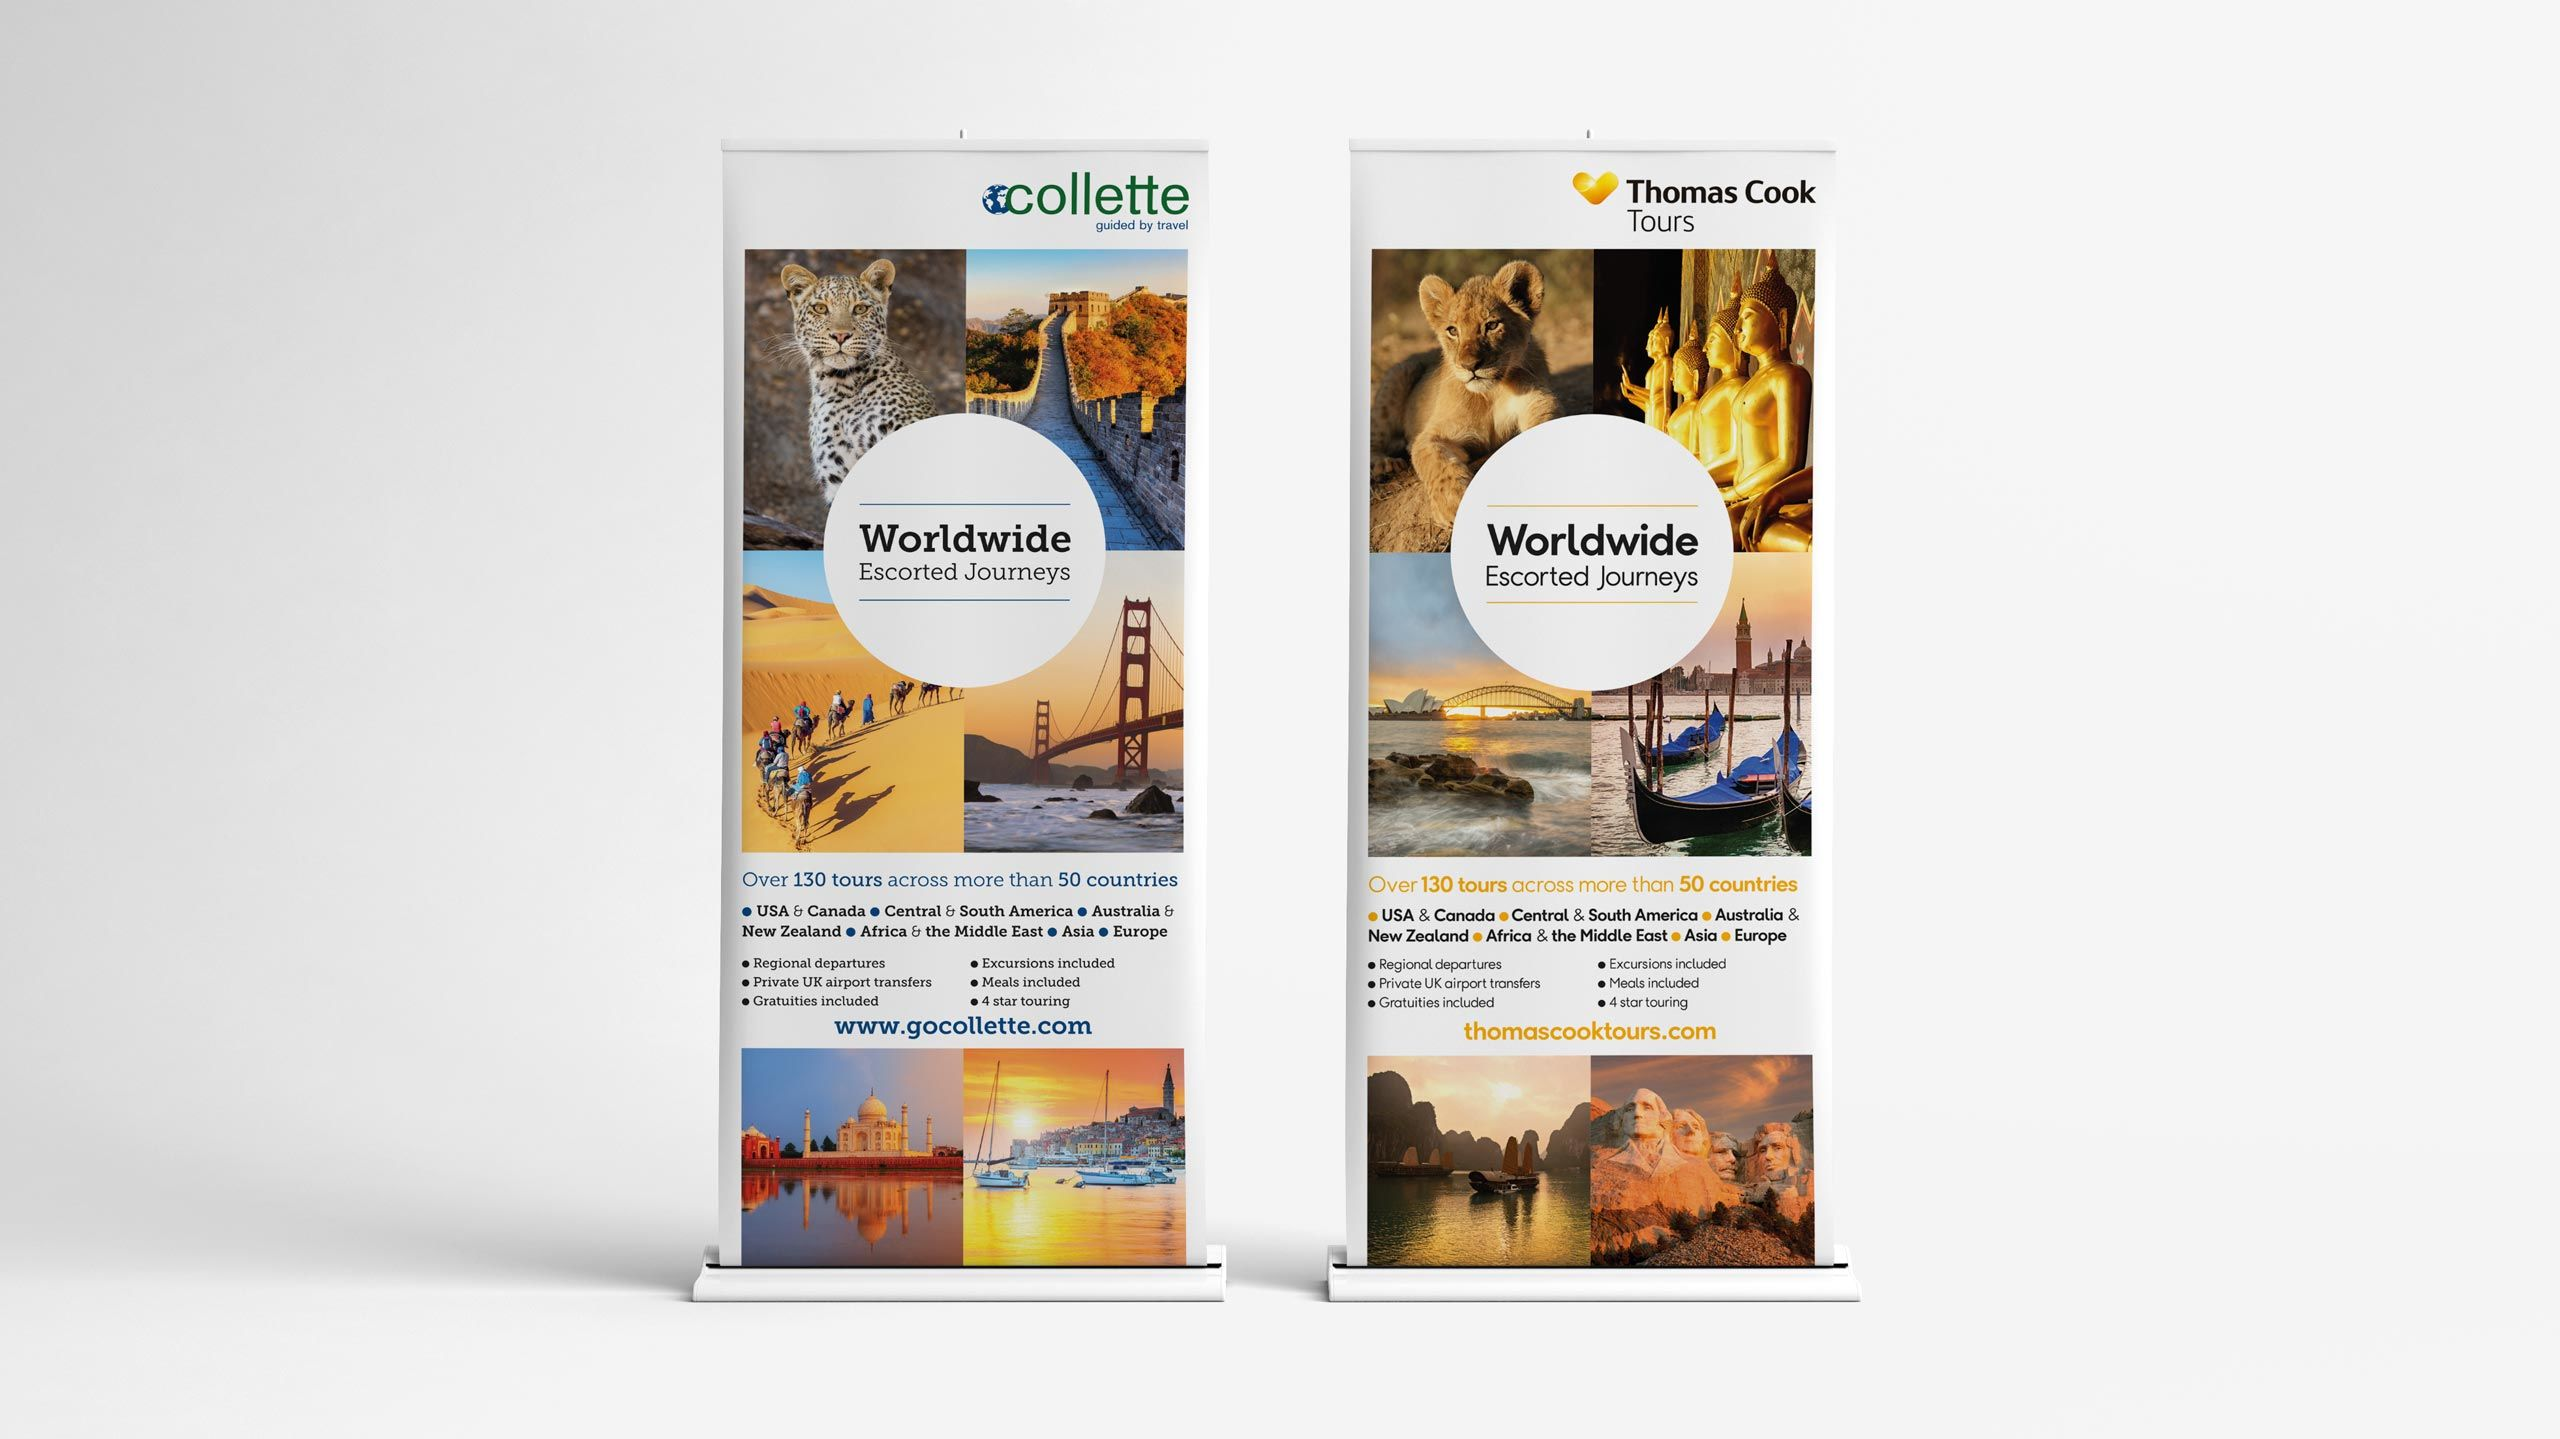 Collette & Thomas Cook banners